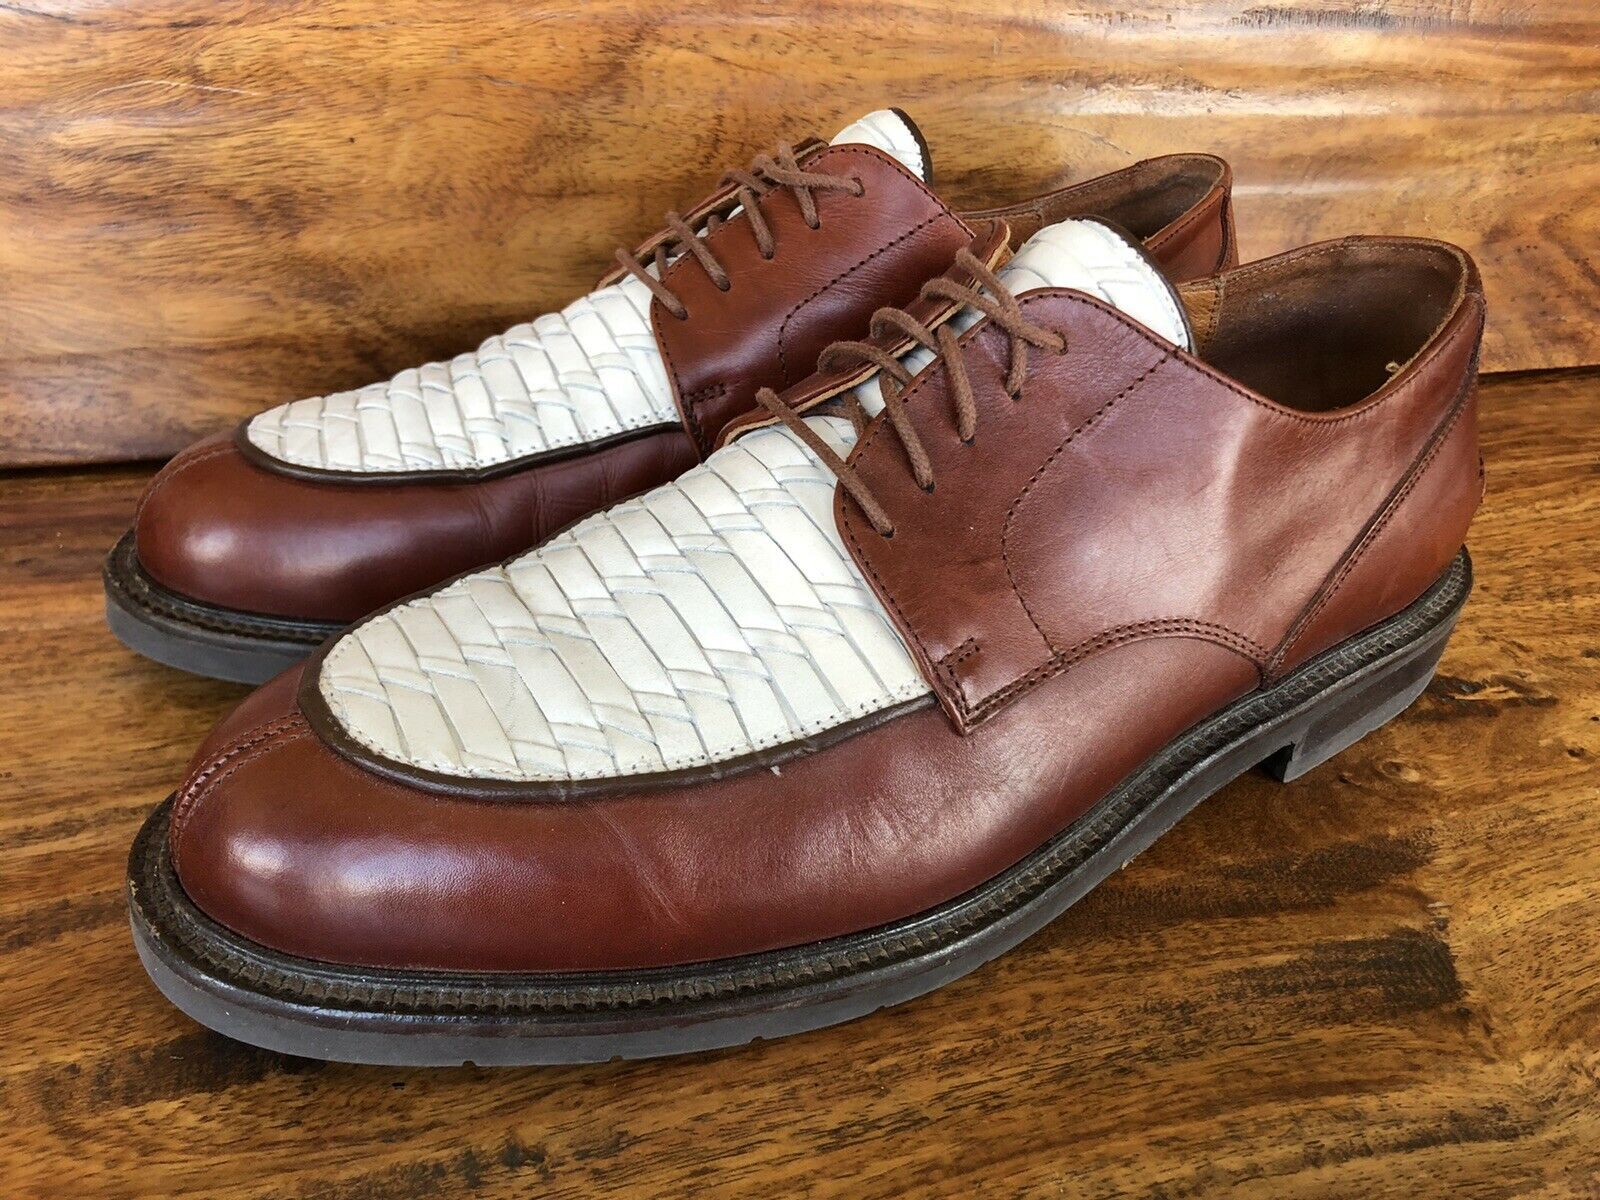 Men's Johnston & Murphy Casual Shoes Brown White Leather Size 11 M Made In Italy